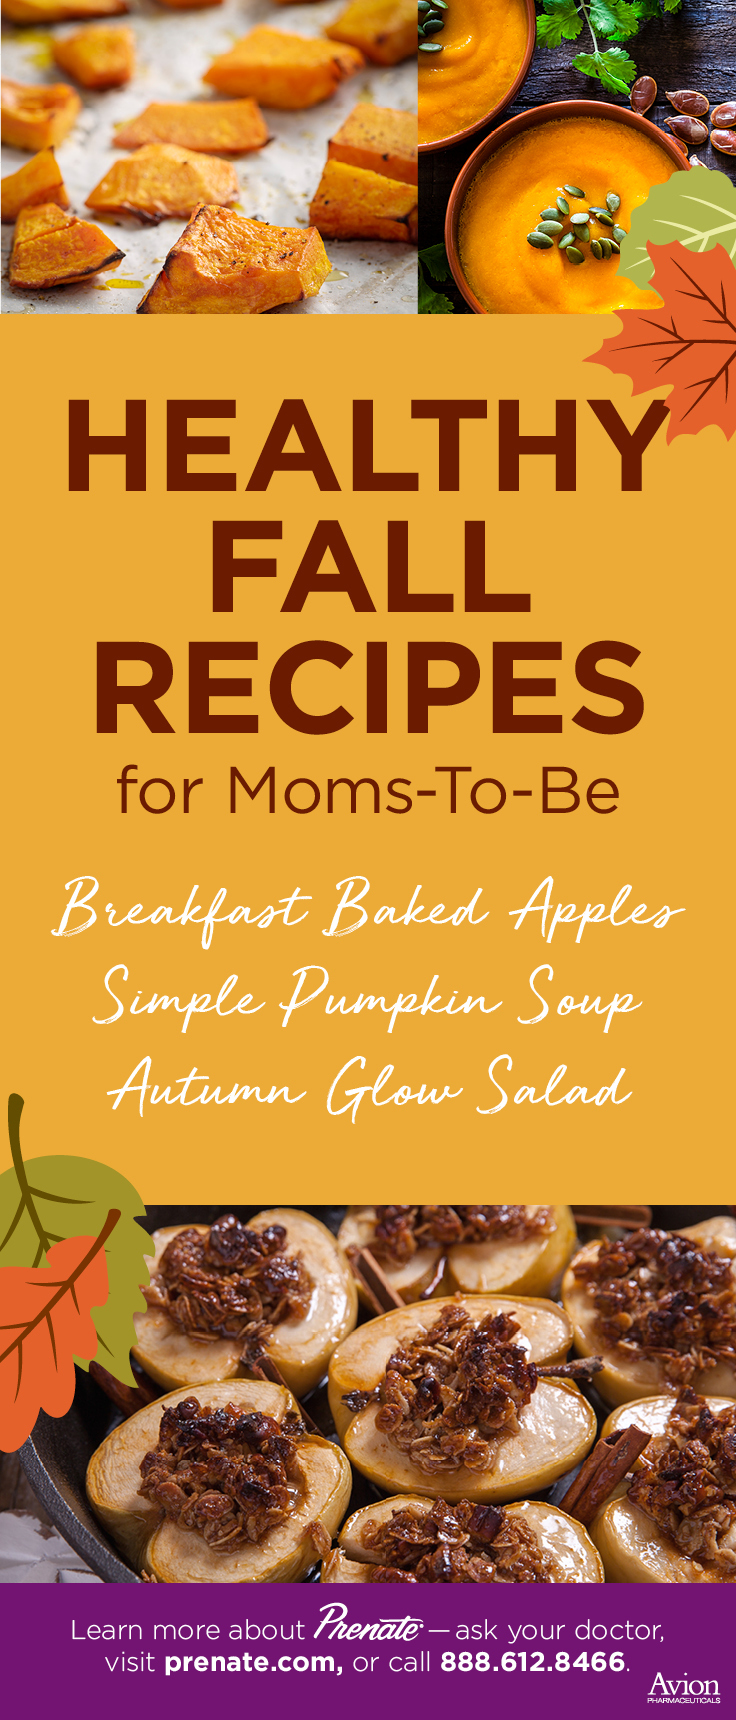 Healthy Fall Recipes graphic